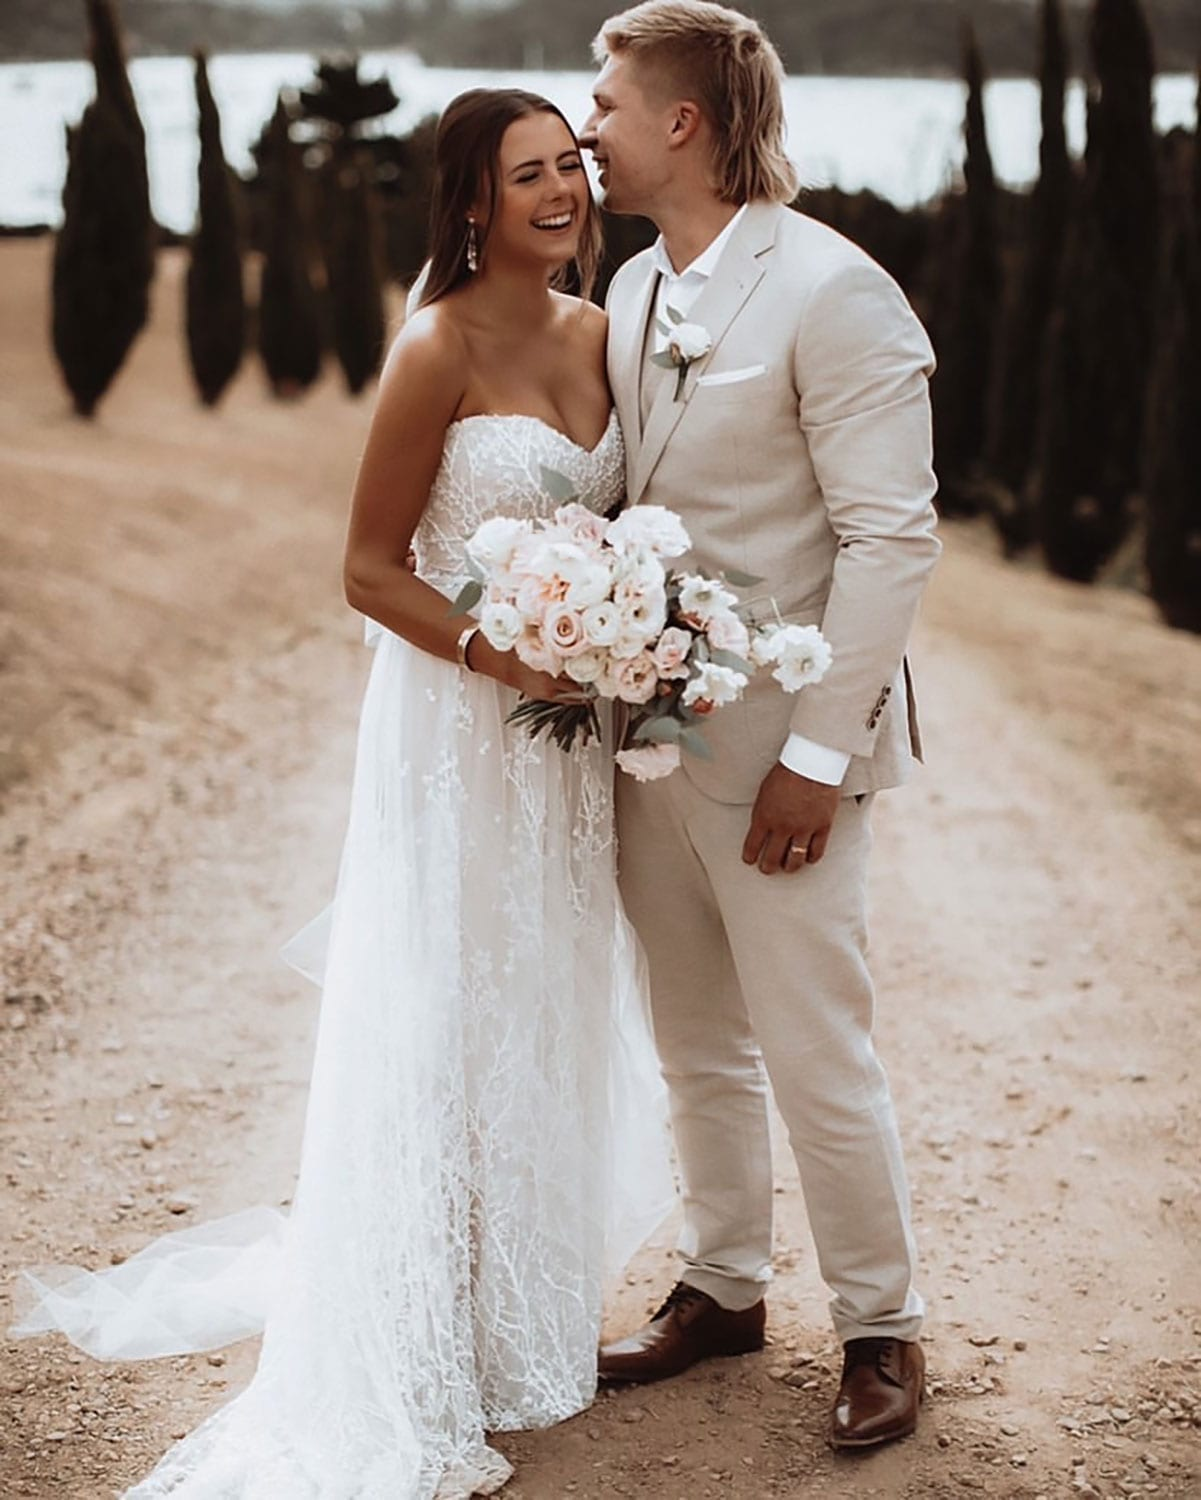 Vinka Design Features Real Weddings - bride wearing custom made strapless beaded lace dress. Bride and groom share a laugh